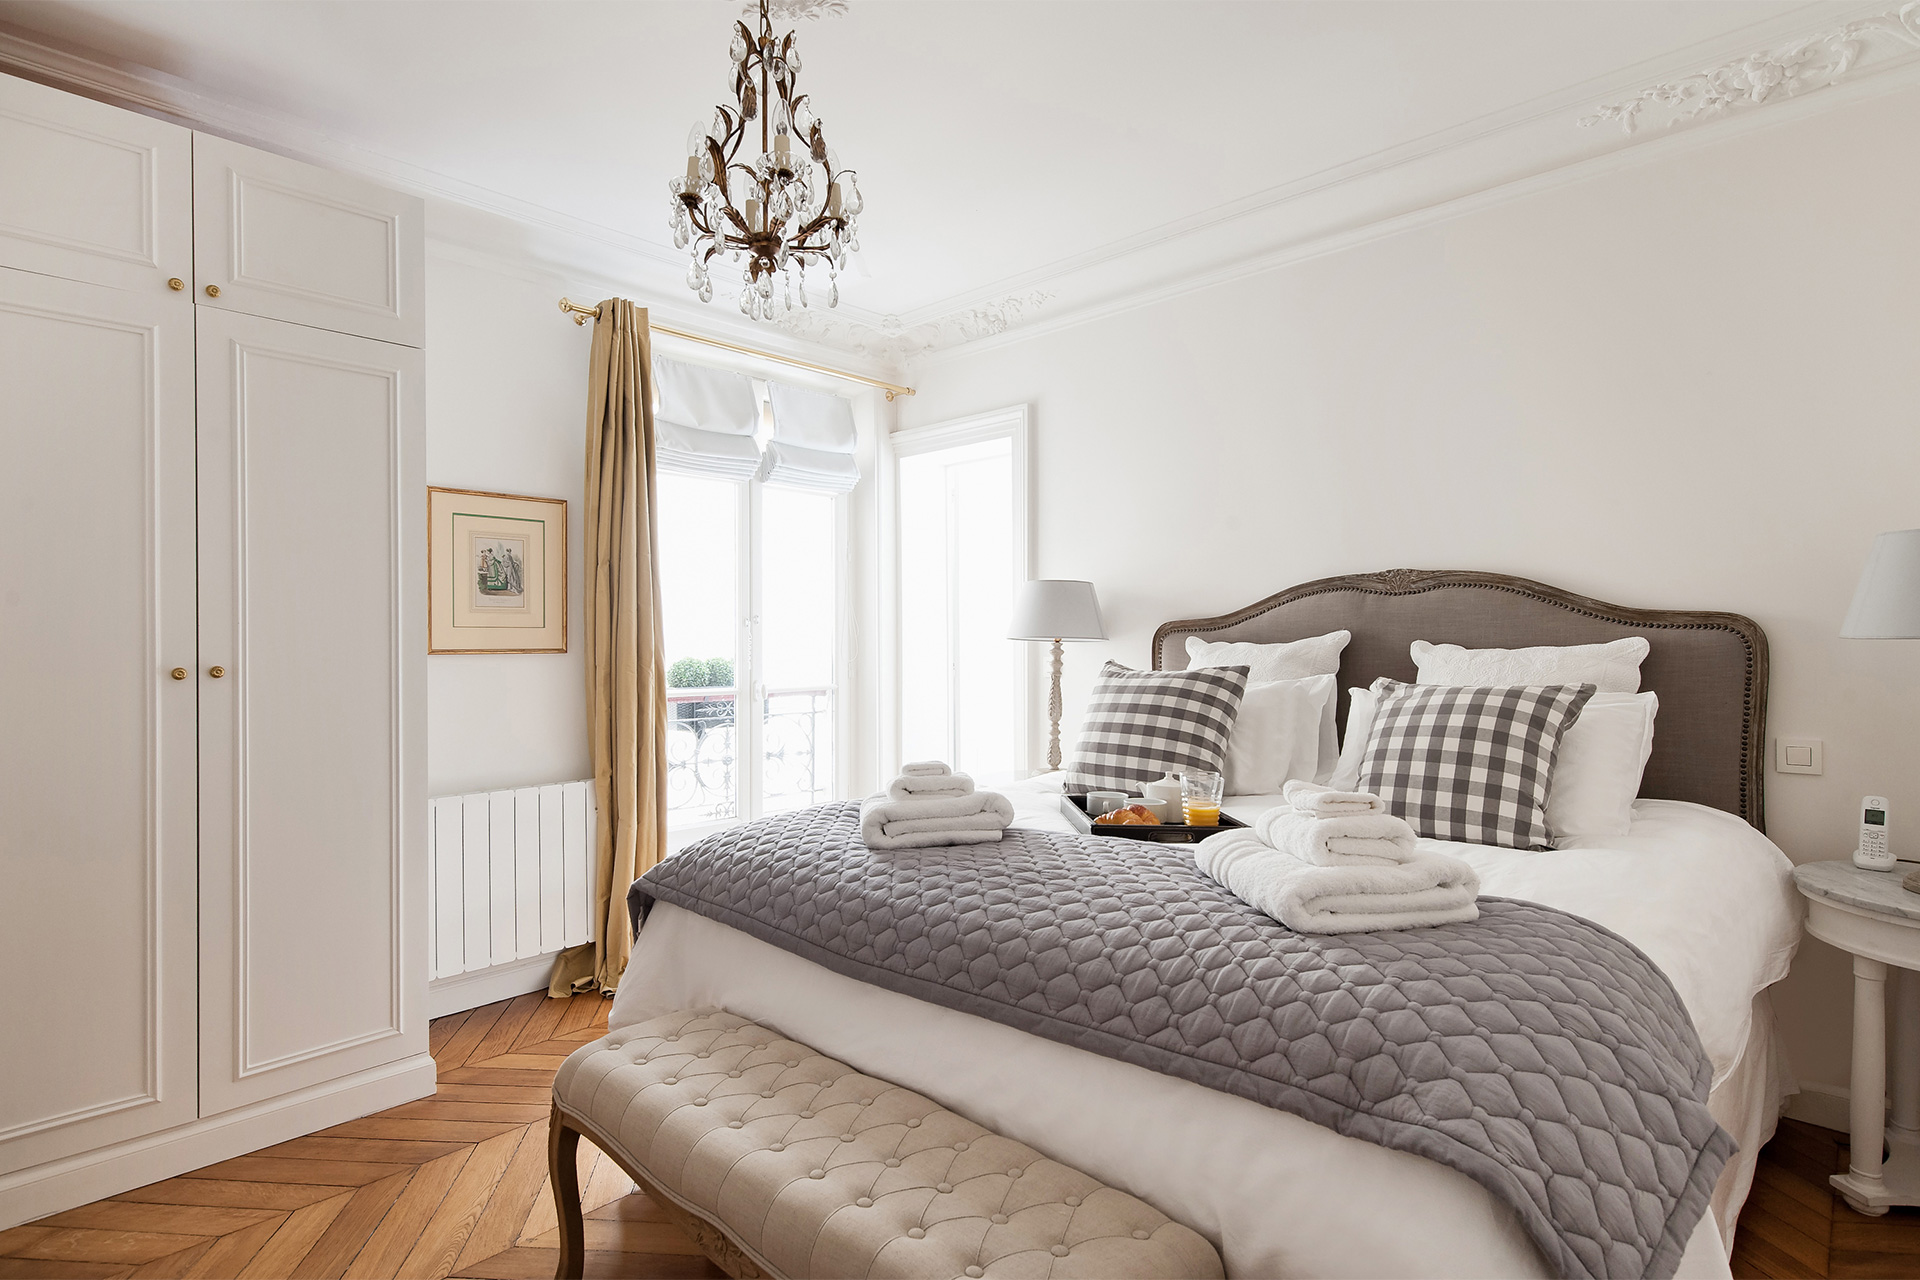 The first bedroom is decorated in soft cream in the Montagny vacation rental offered by Paris Perfect